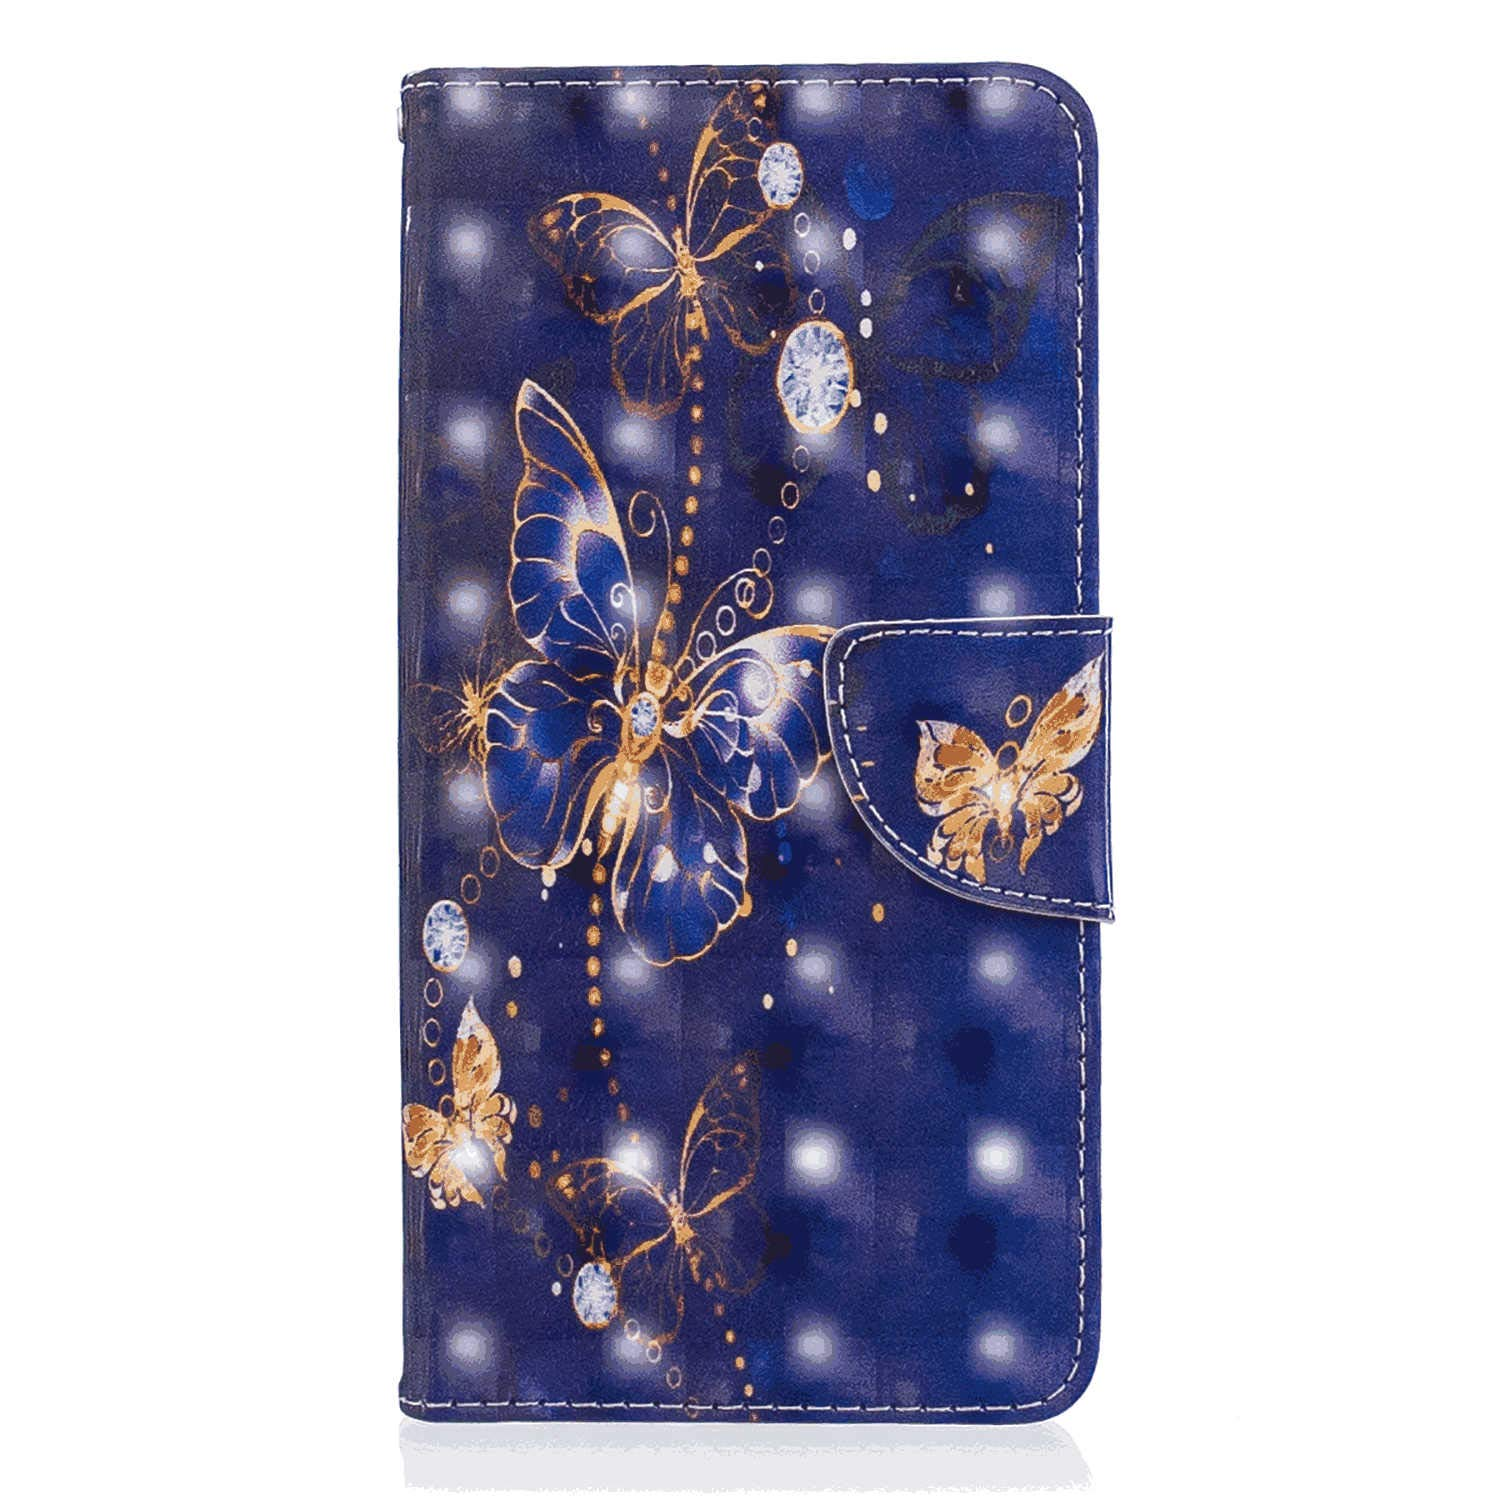 Samsung Galaxy S9 Plus Flip Case Cover for Samsung Galaxy S9 Plus Leather Mobile Phone case Kickstand Extra-Protective Business Card Holders with Free Waterproof-Bag Judicious